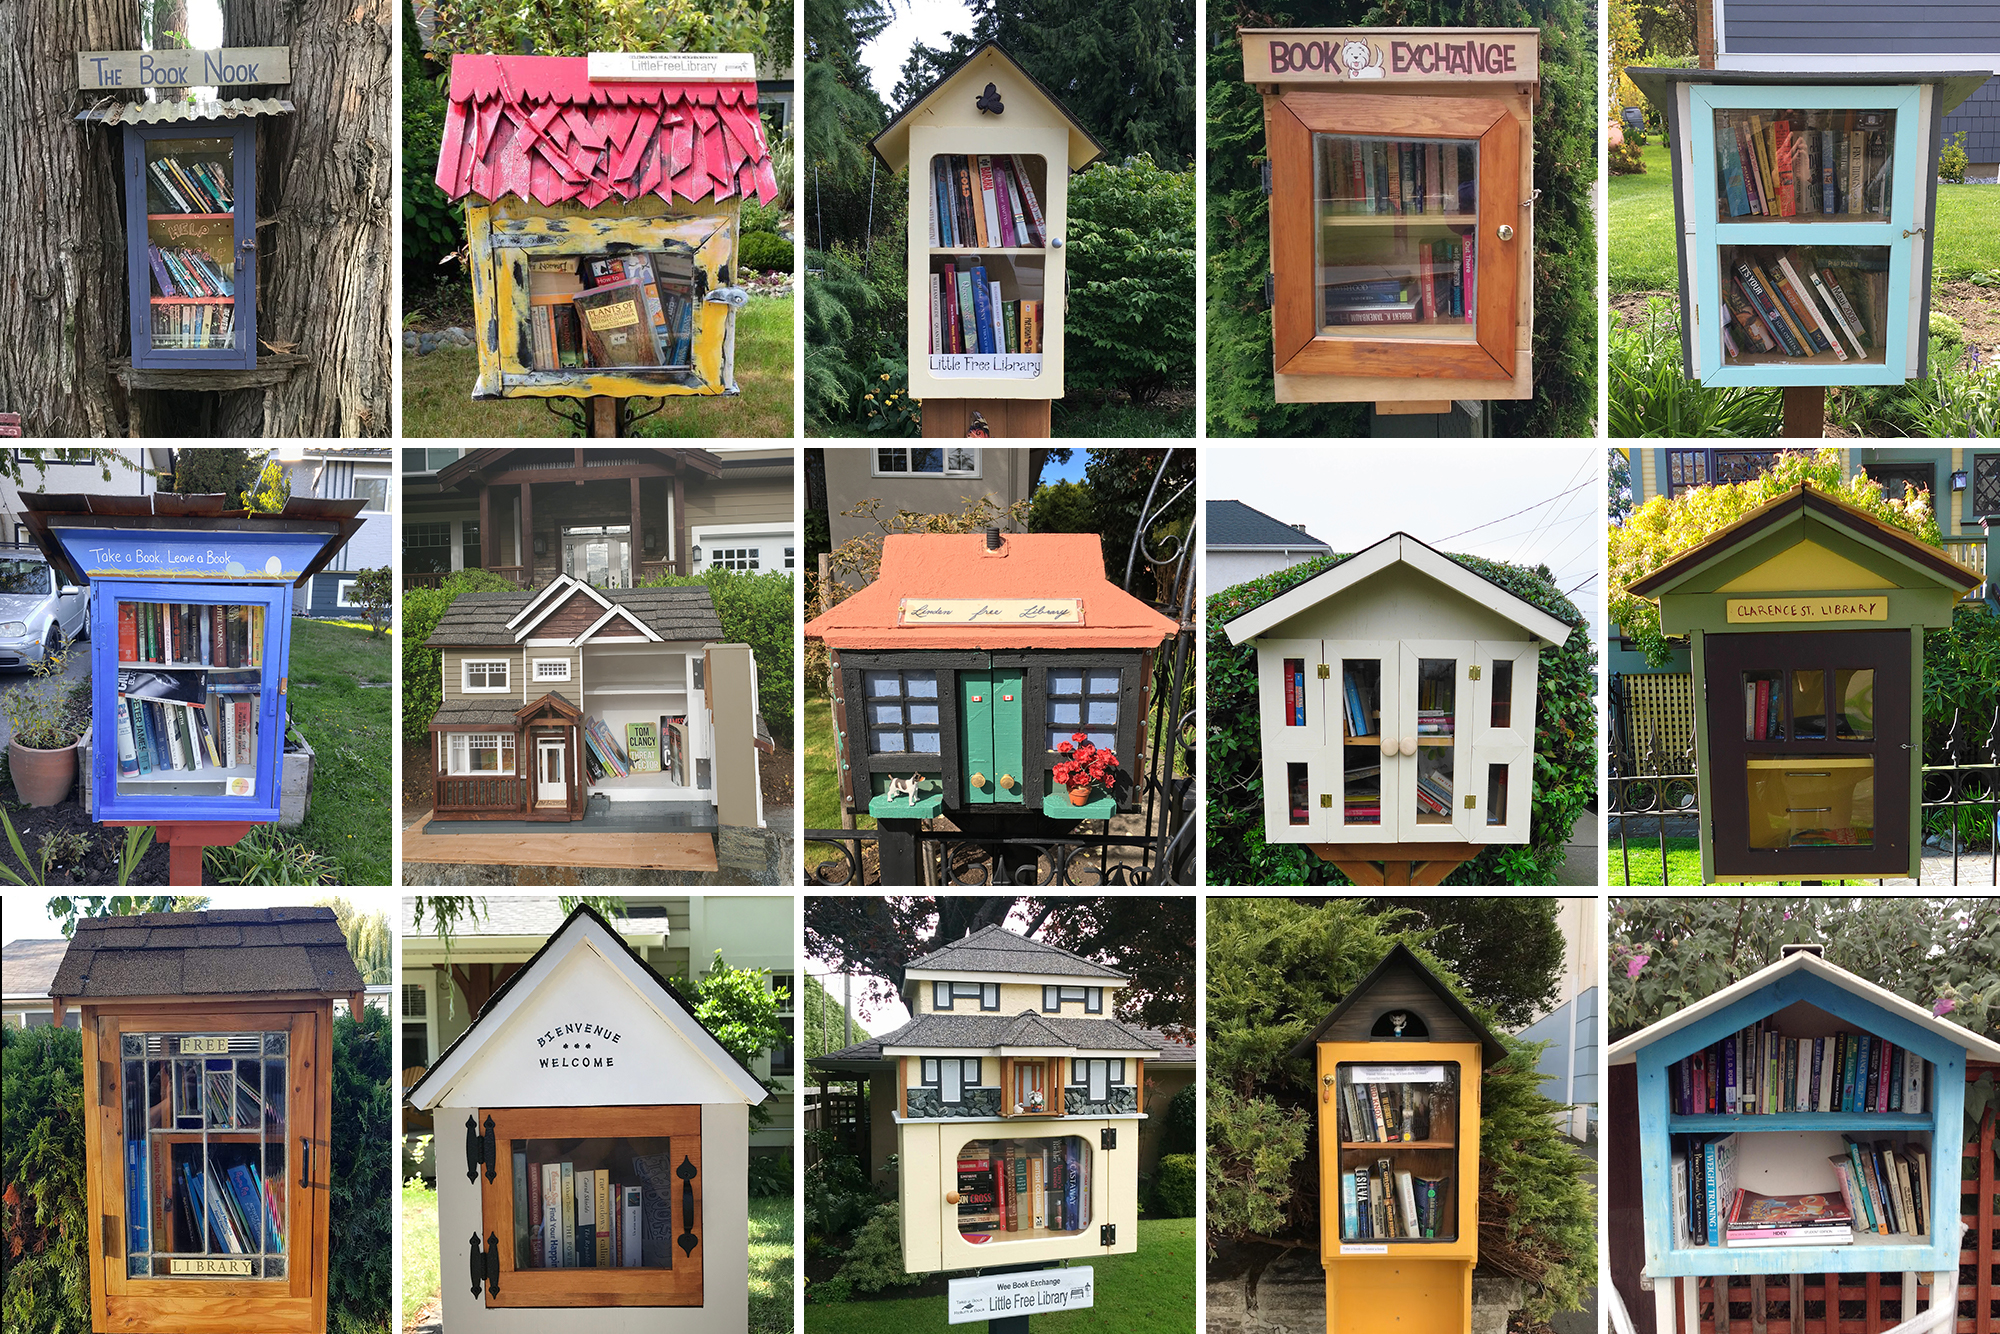 Canada's biggest community of little free libraries has only grown stronger through COVID-19